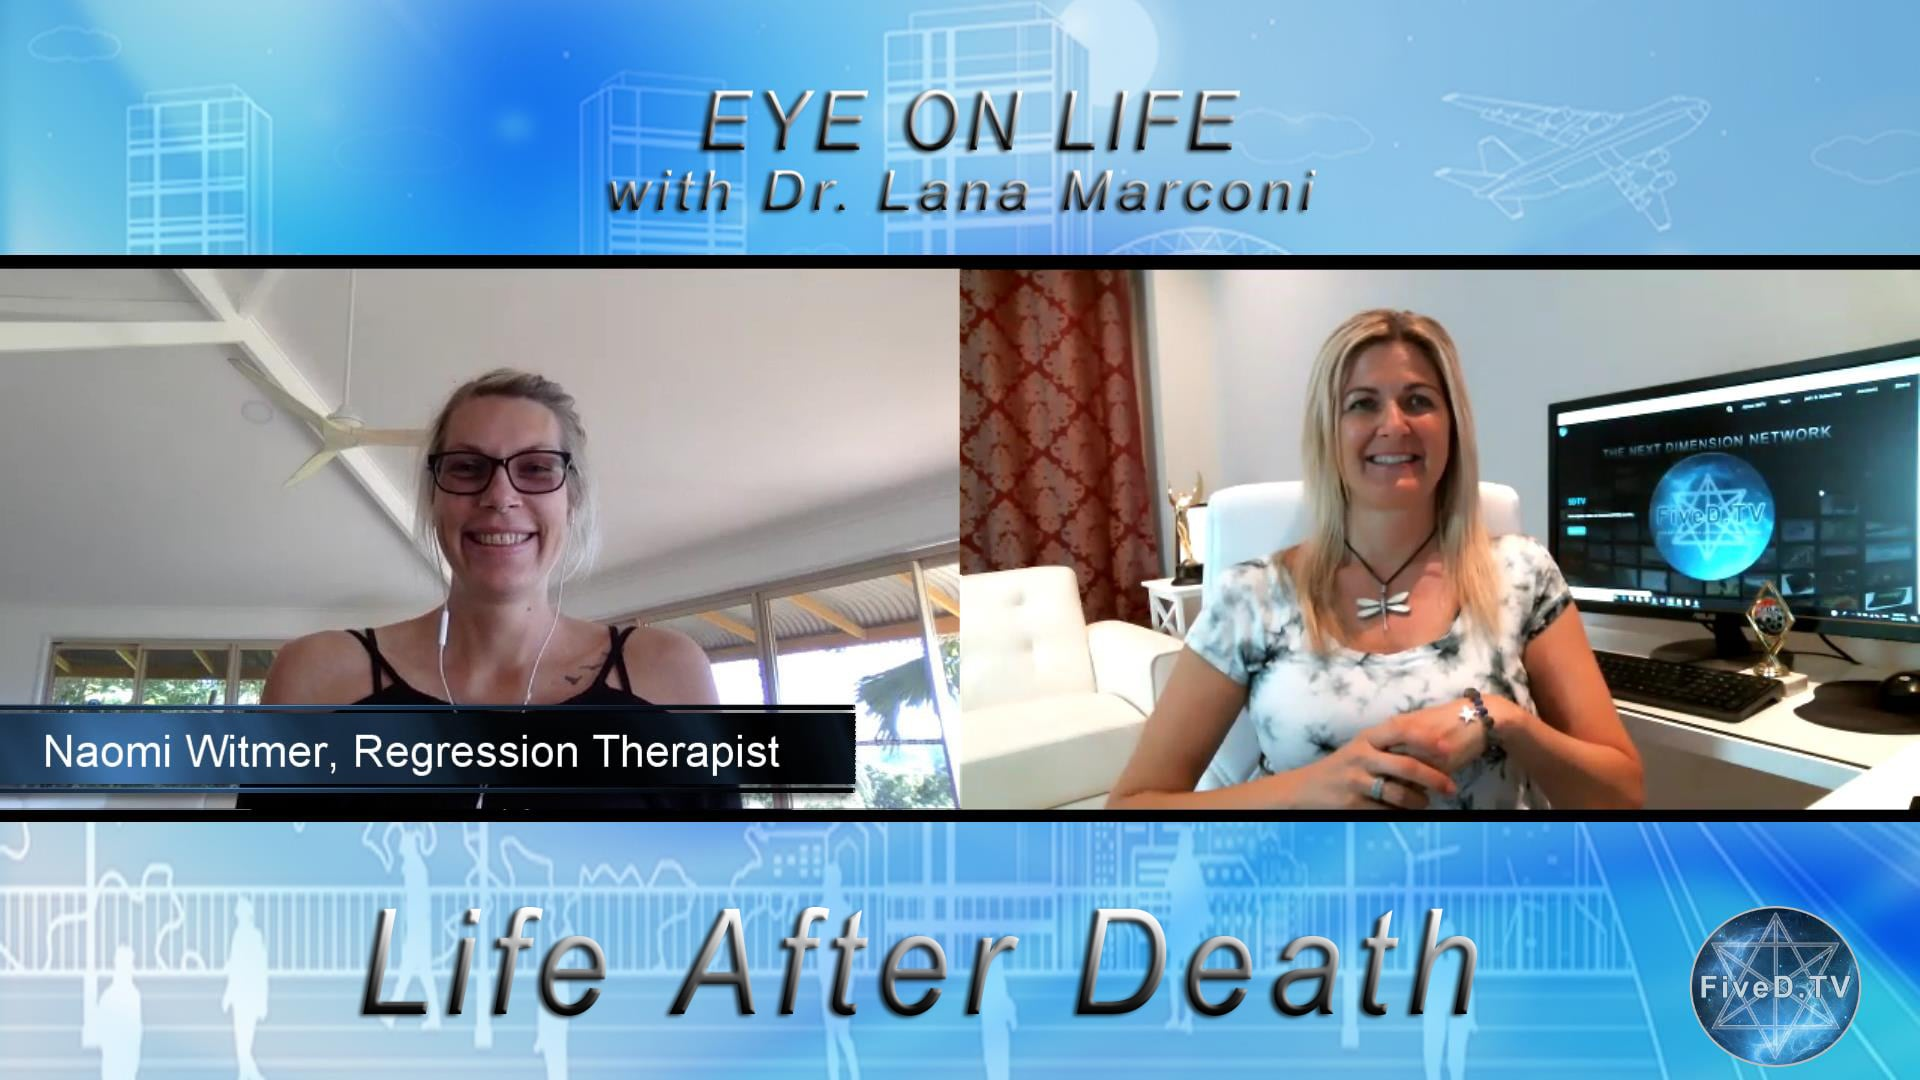 Eye On Life: Life After Death